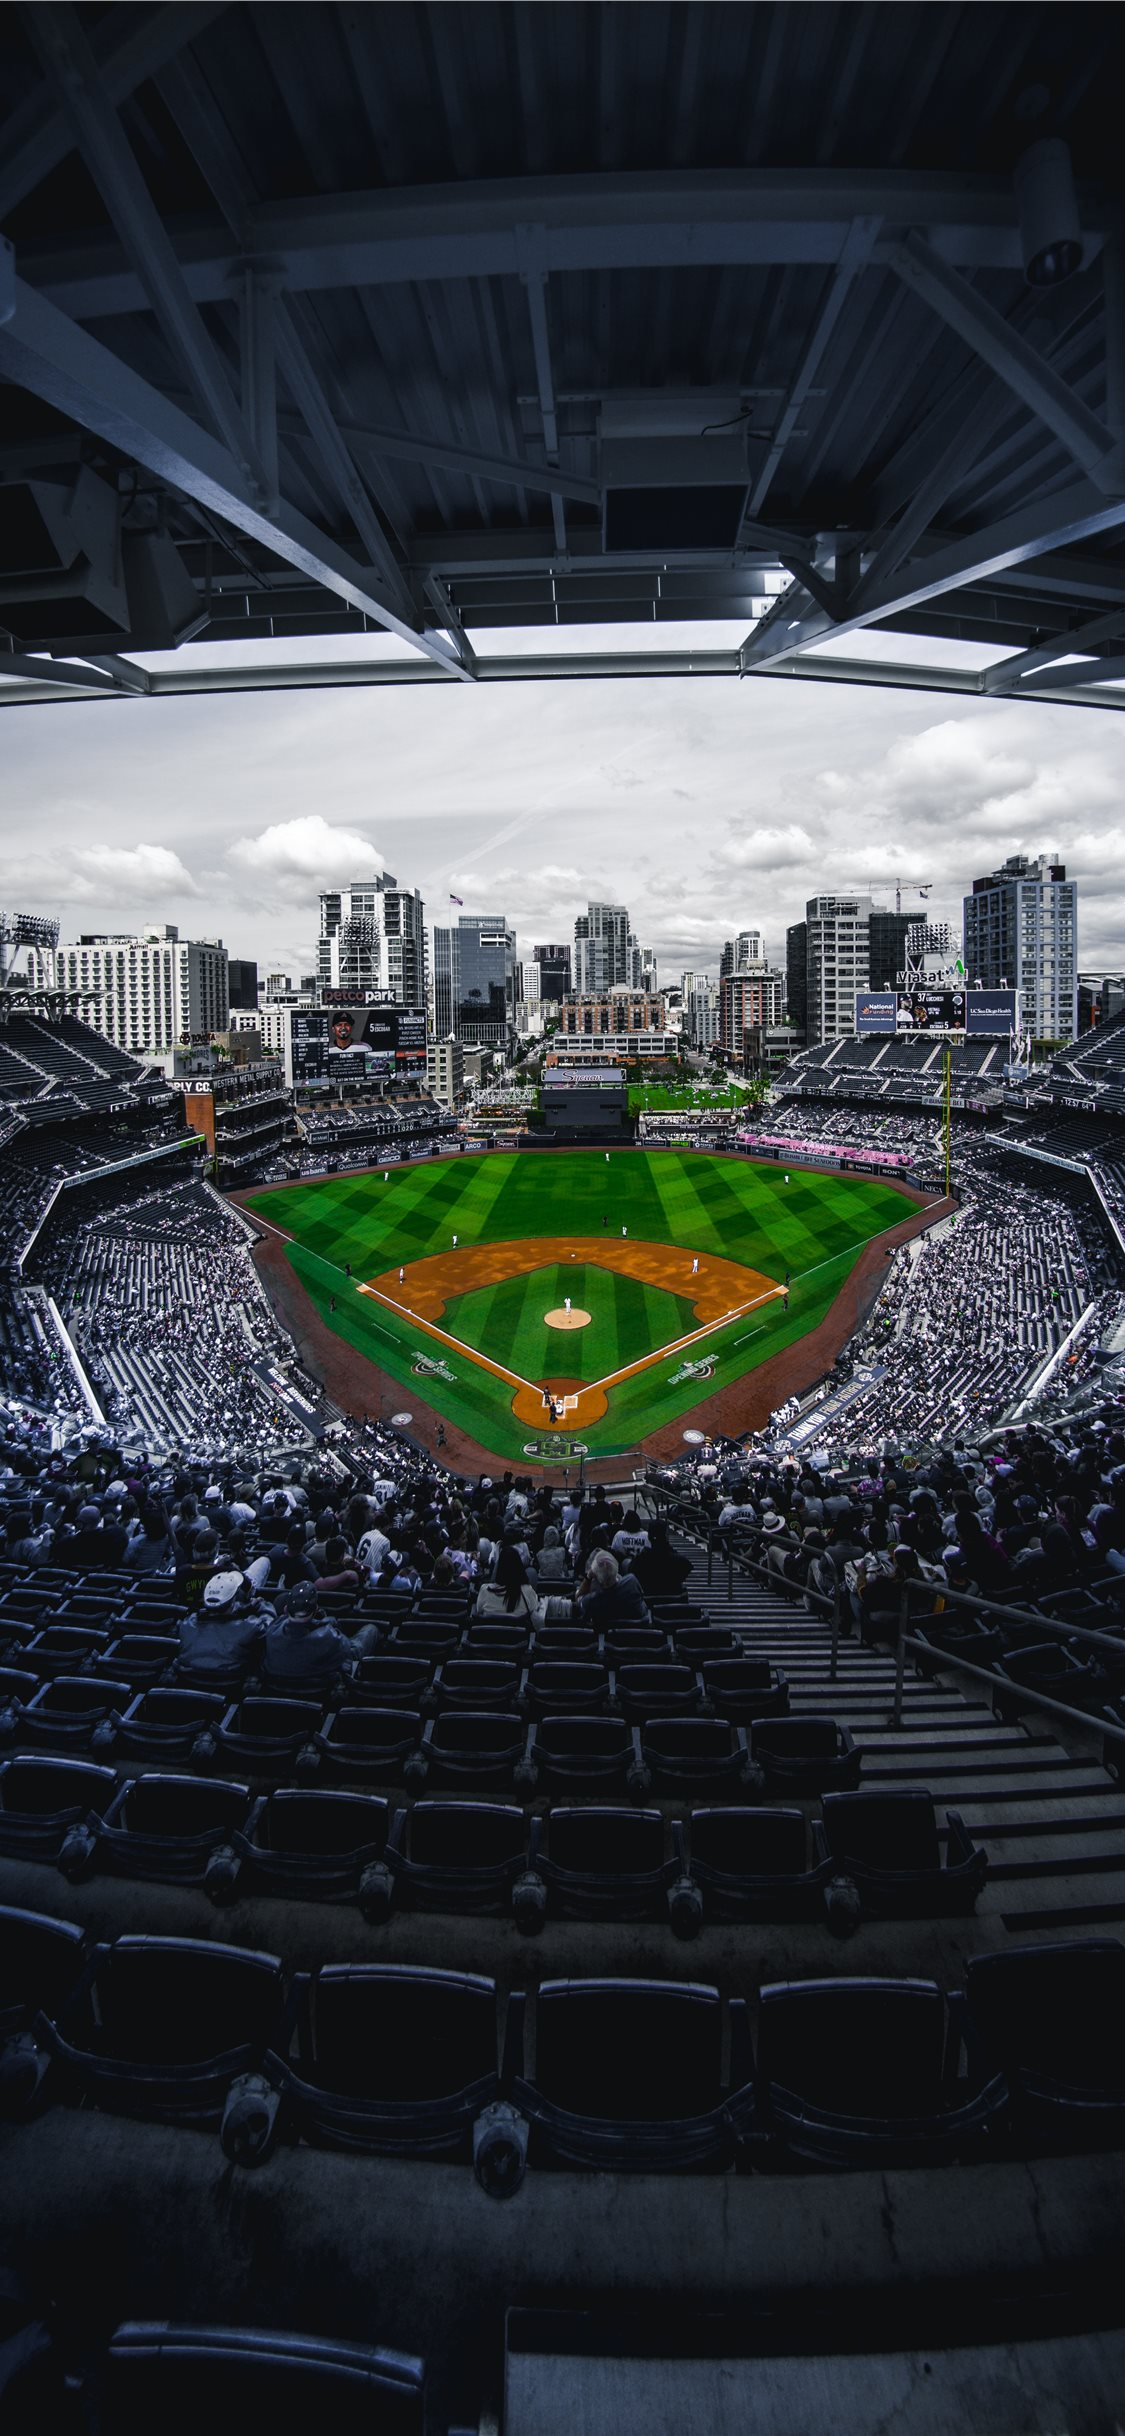 Petco Park San Diego United States Iphone Wallpapers Free Download